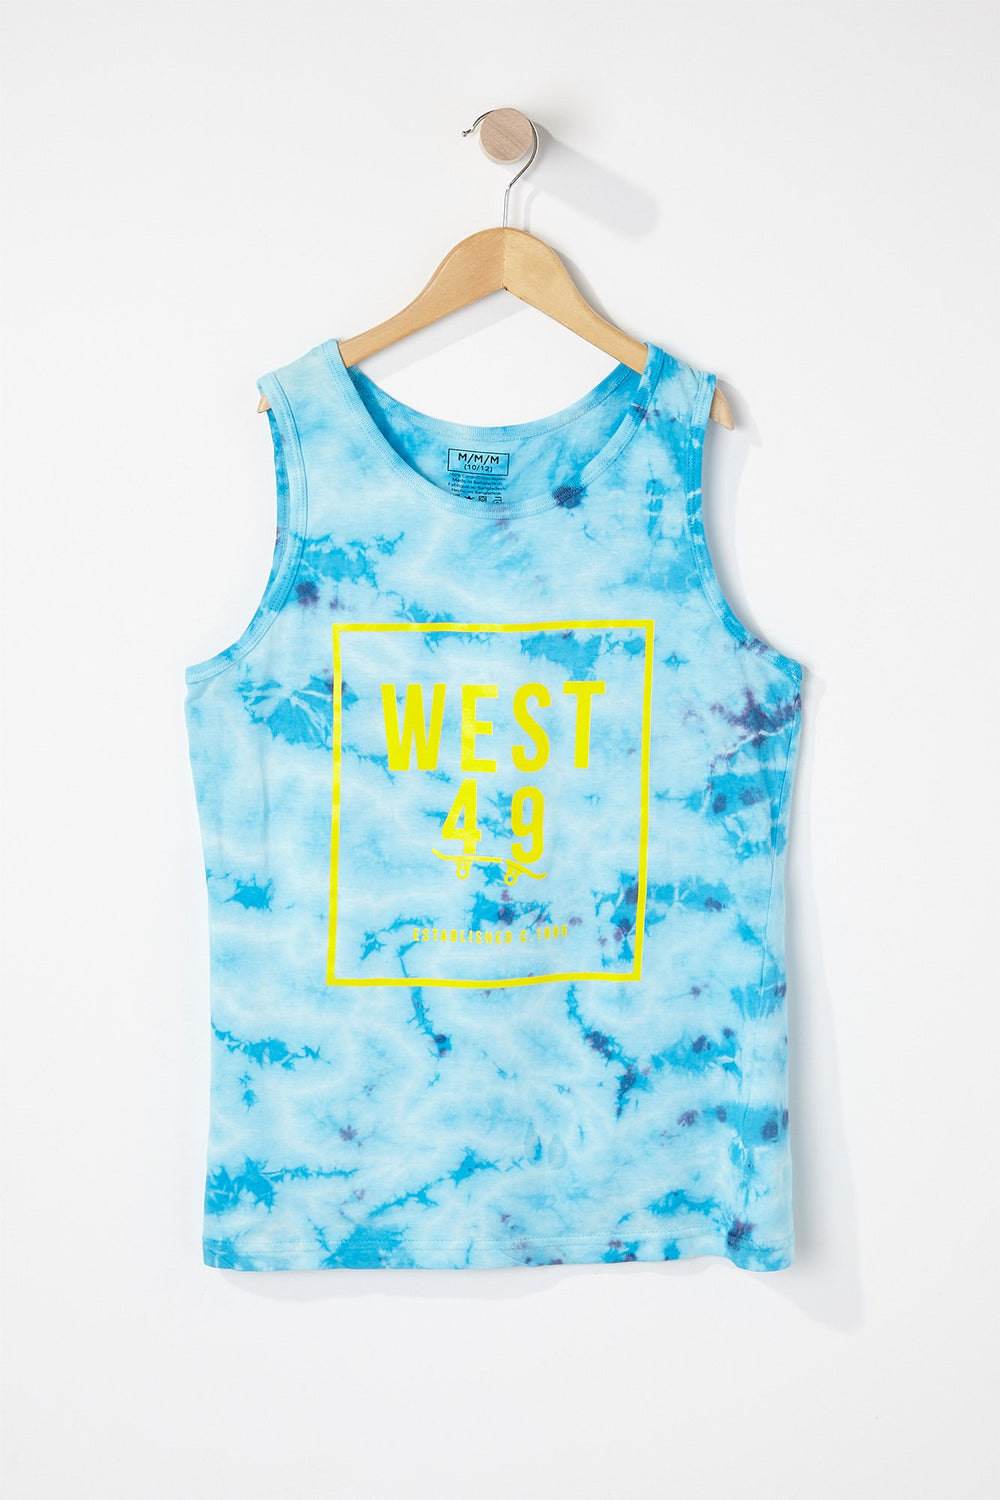 West49 Boys Front Box Logo Tank Top Blue